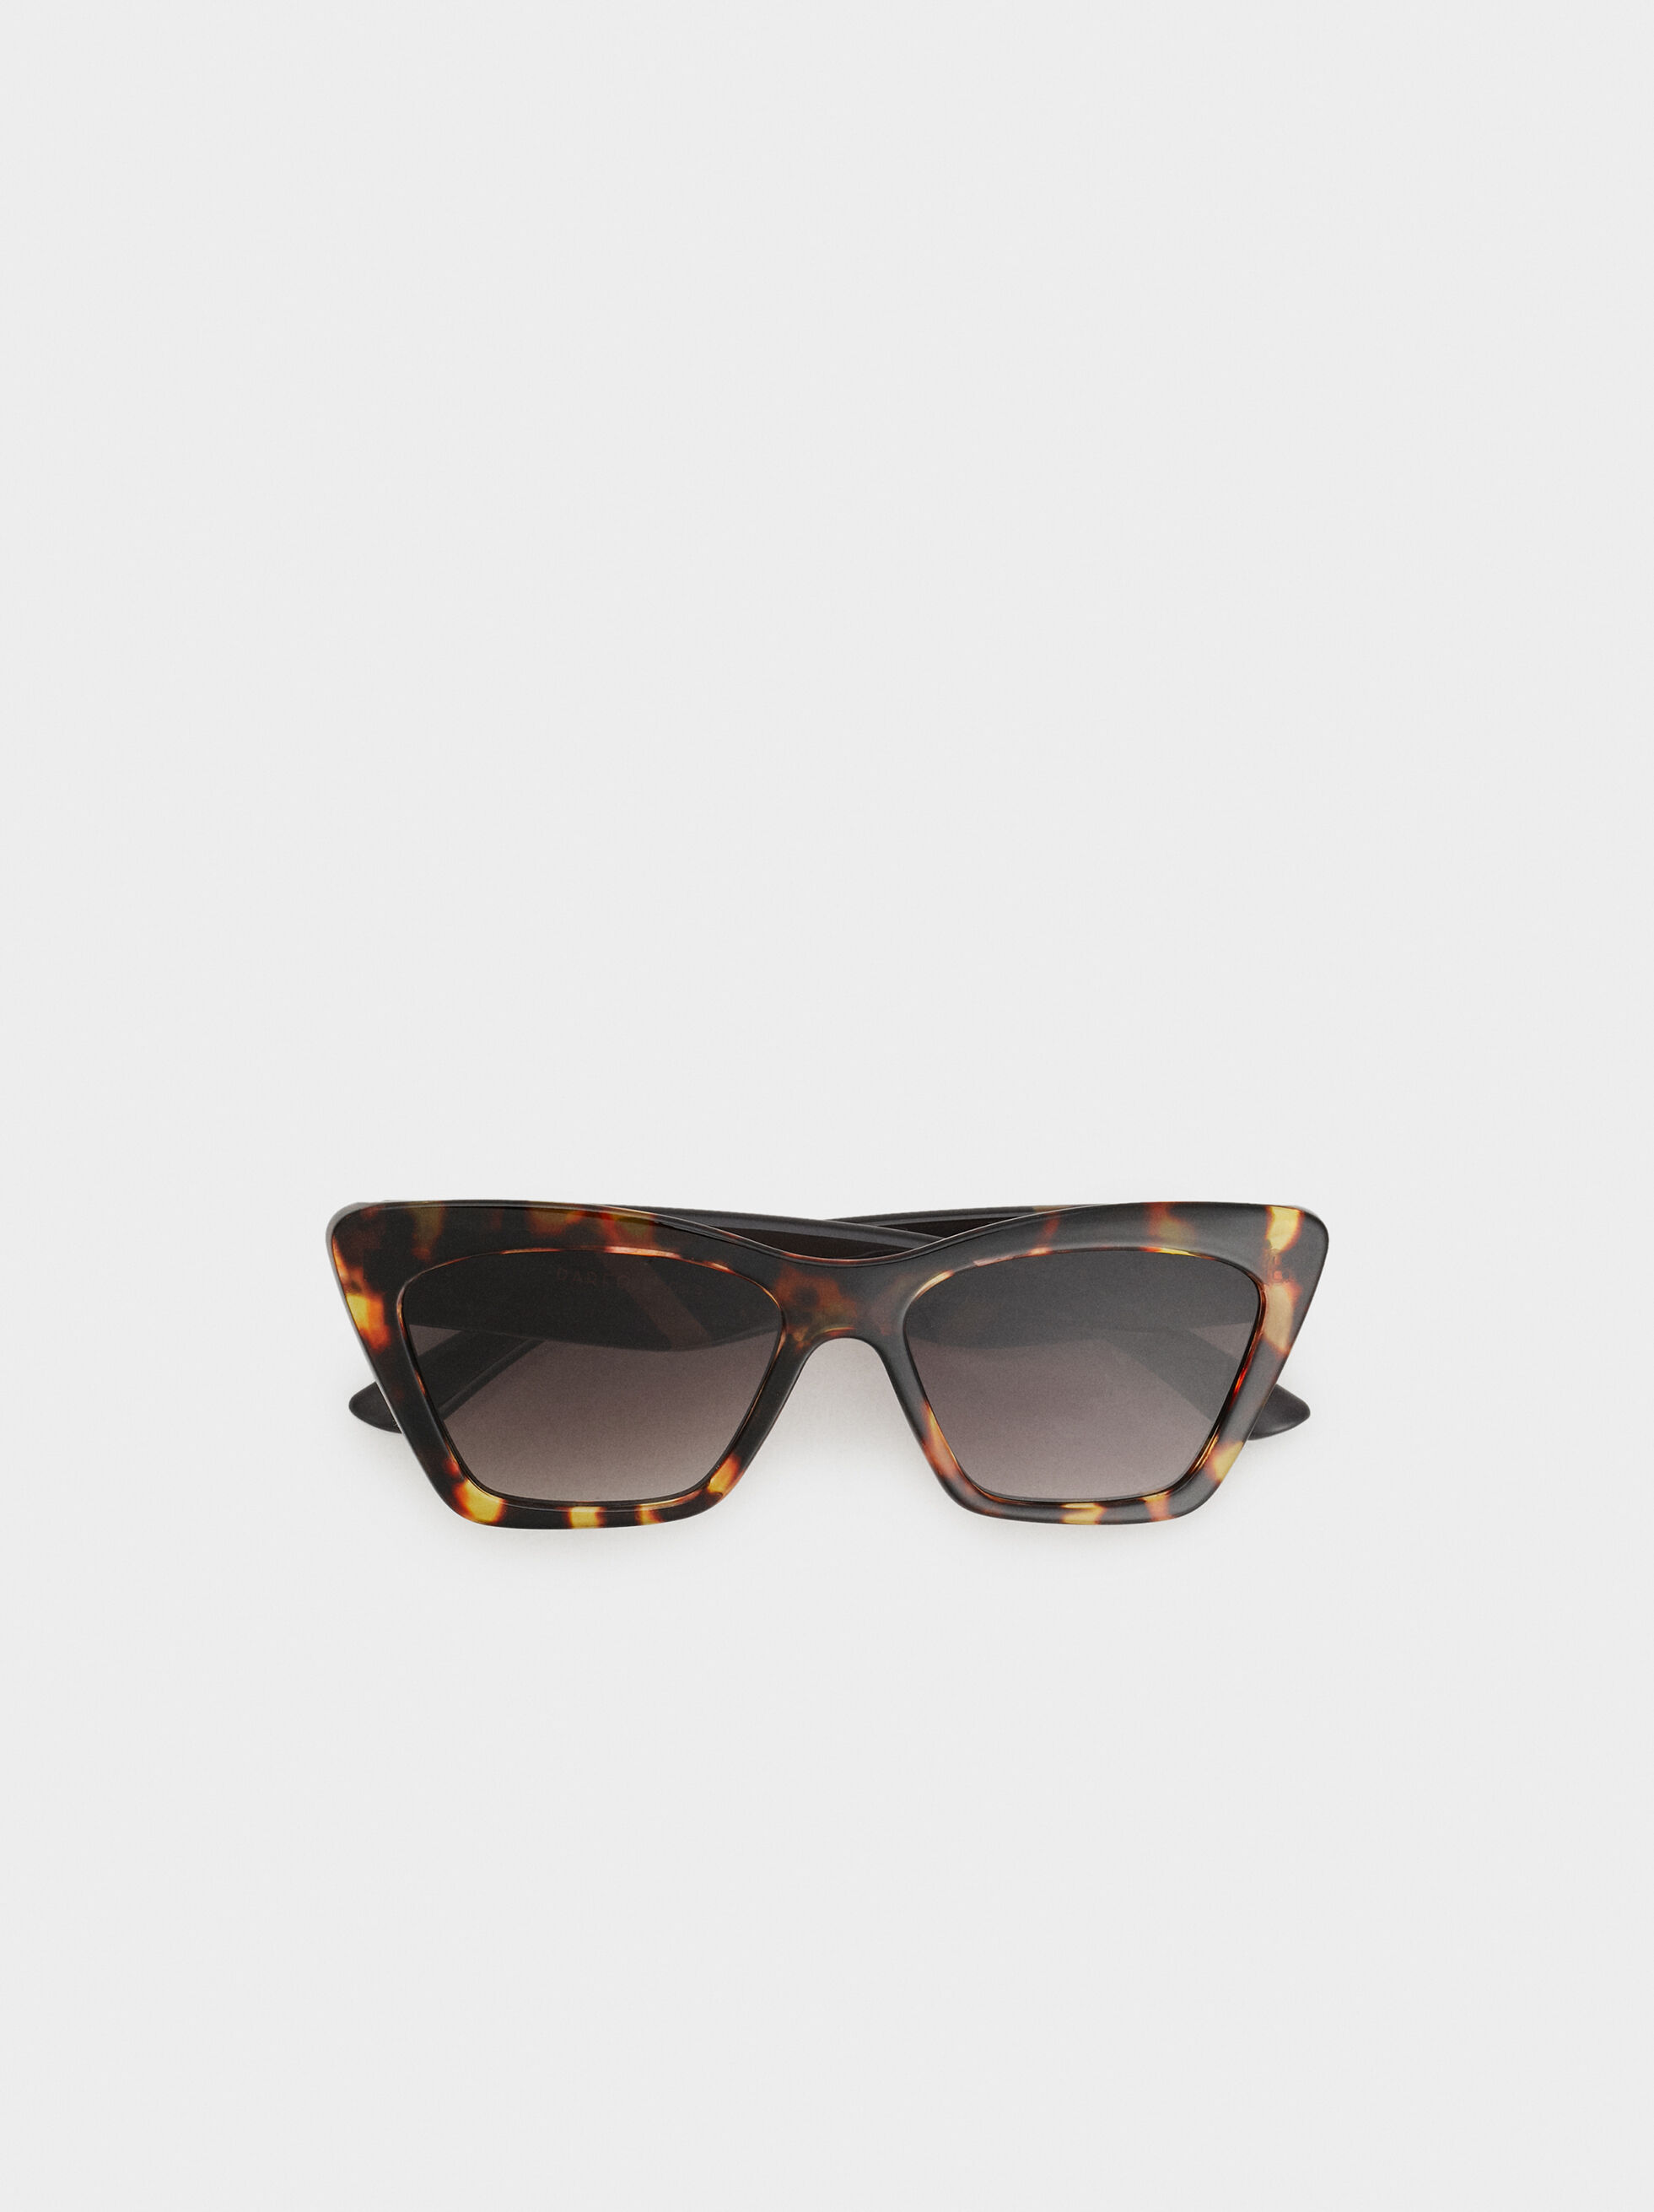 Tortoiseshell Cat Eye Sunglasses, Brown, hi-res